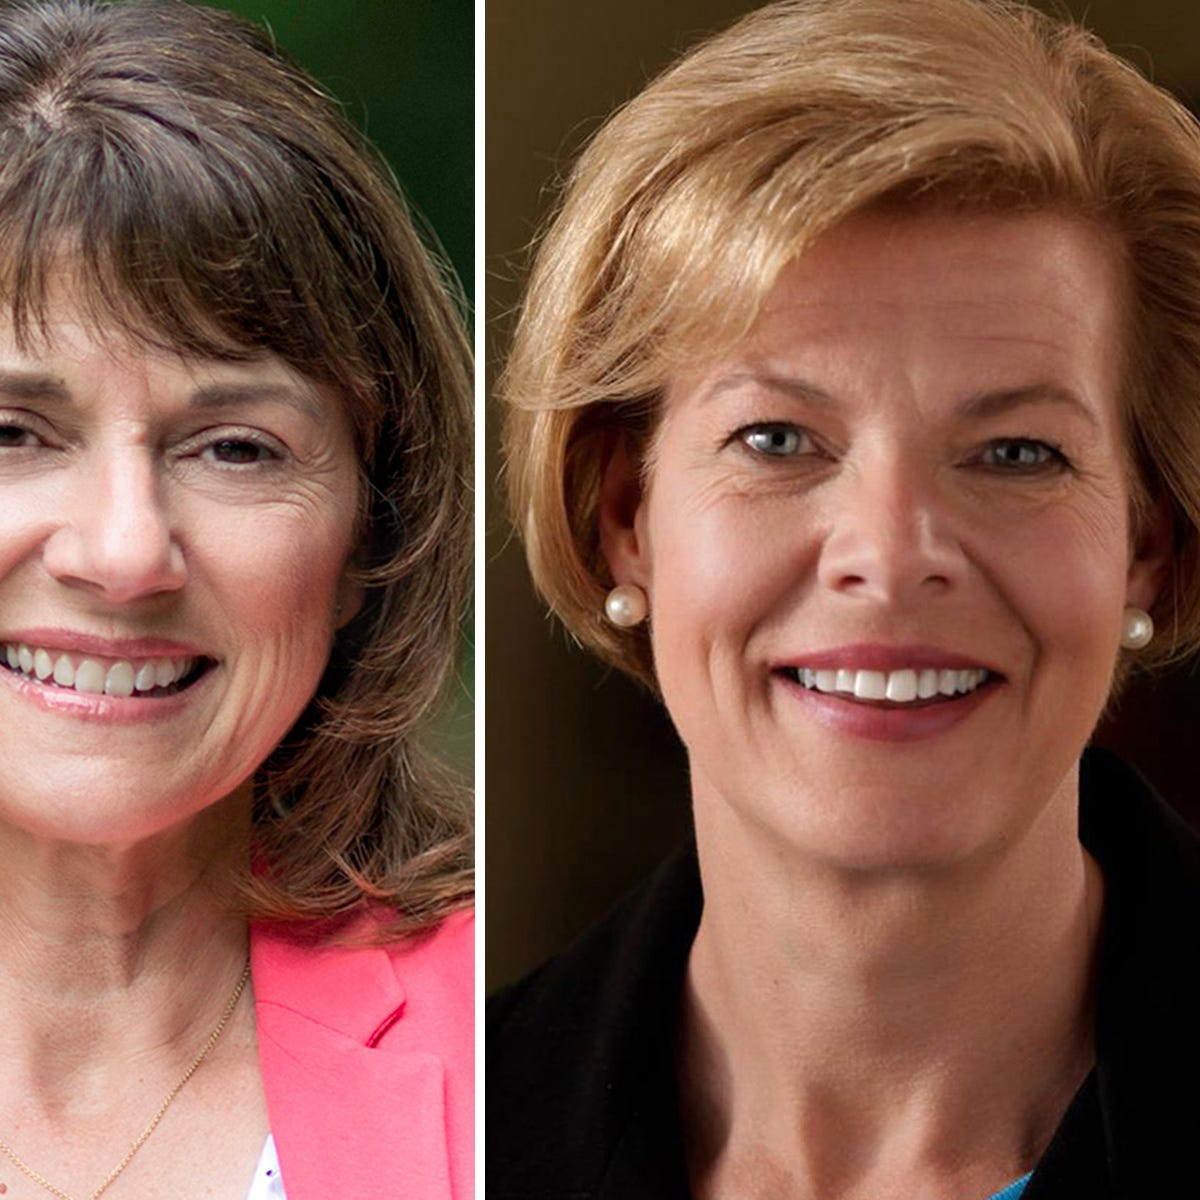 Leah Vukmir defeats Kevin Nicholson for GOP nomination for U.S. Senate and will meet Tammy Baldwin in November